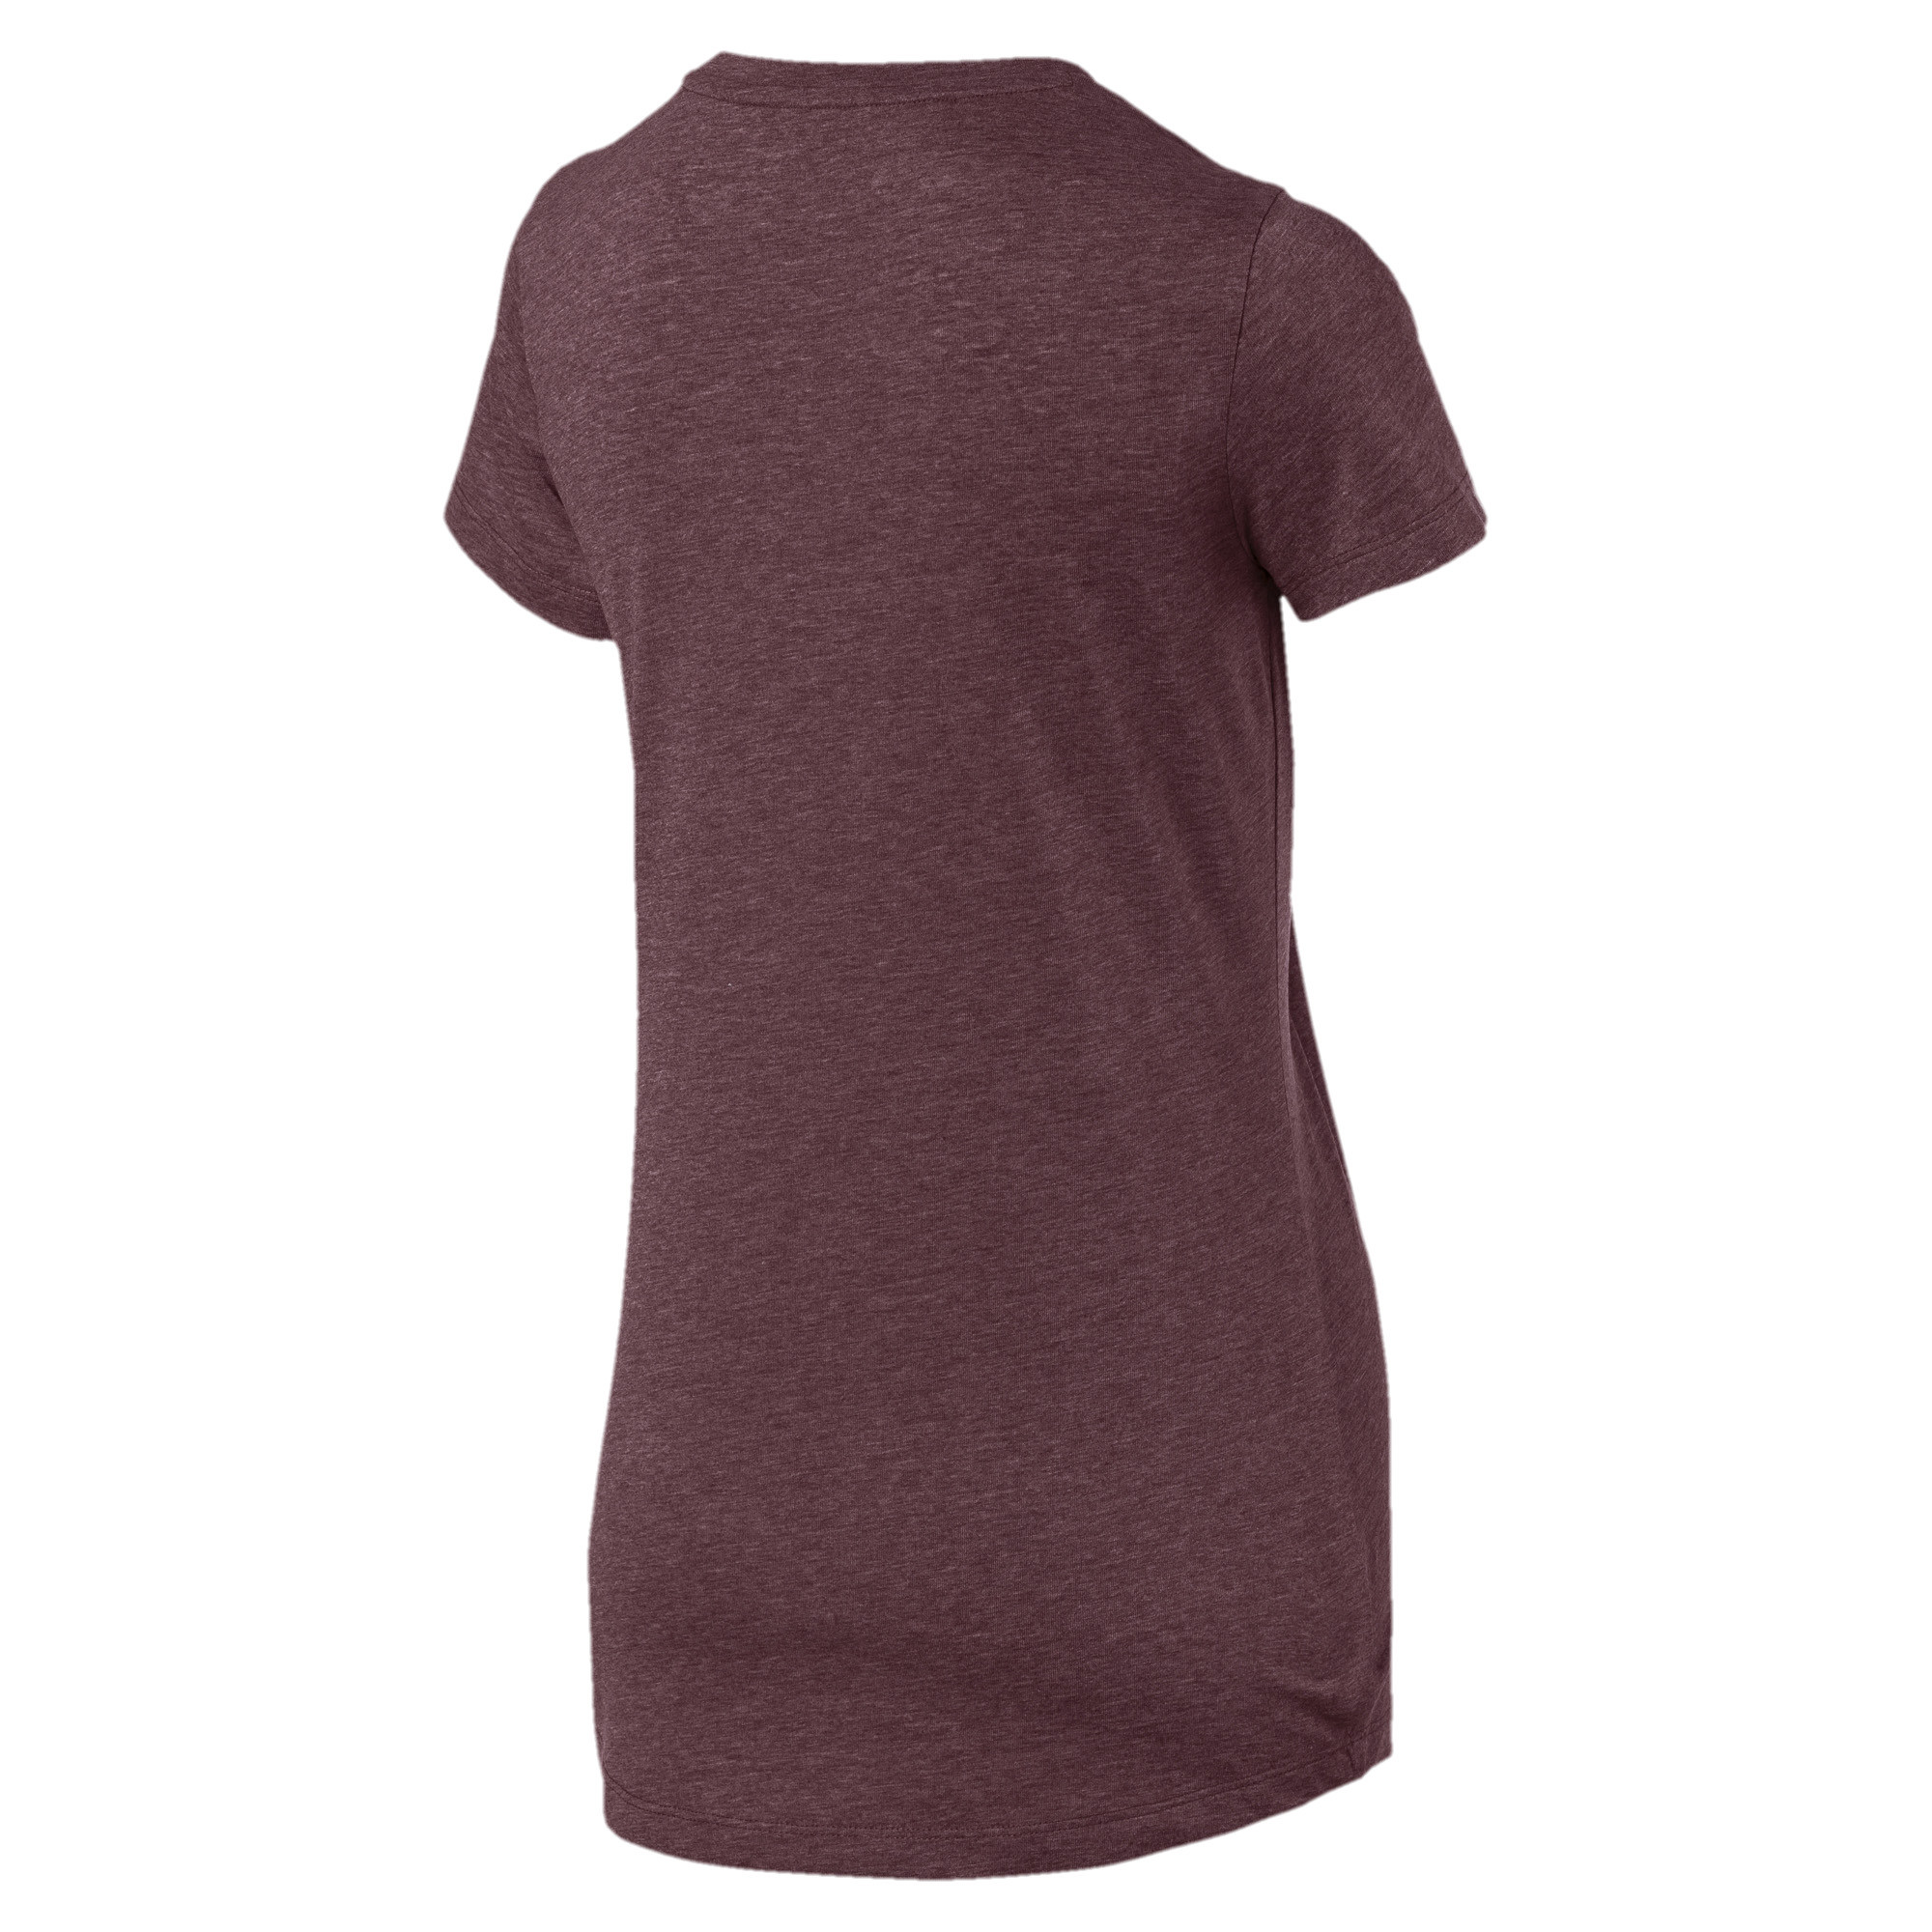 PUMA-Essentials-Women-039-s-Heather-Tee-Women-Tee-Basics thumbnail 8